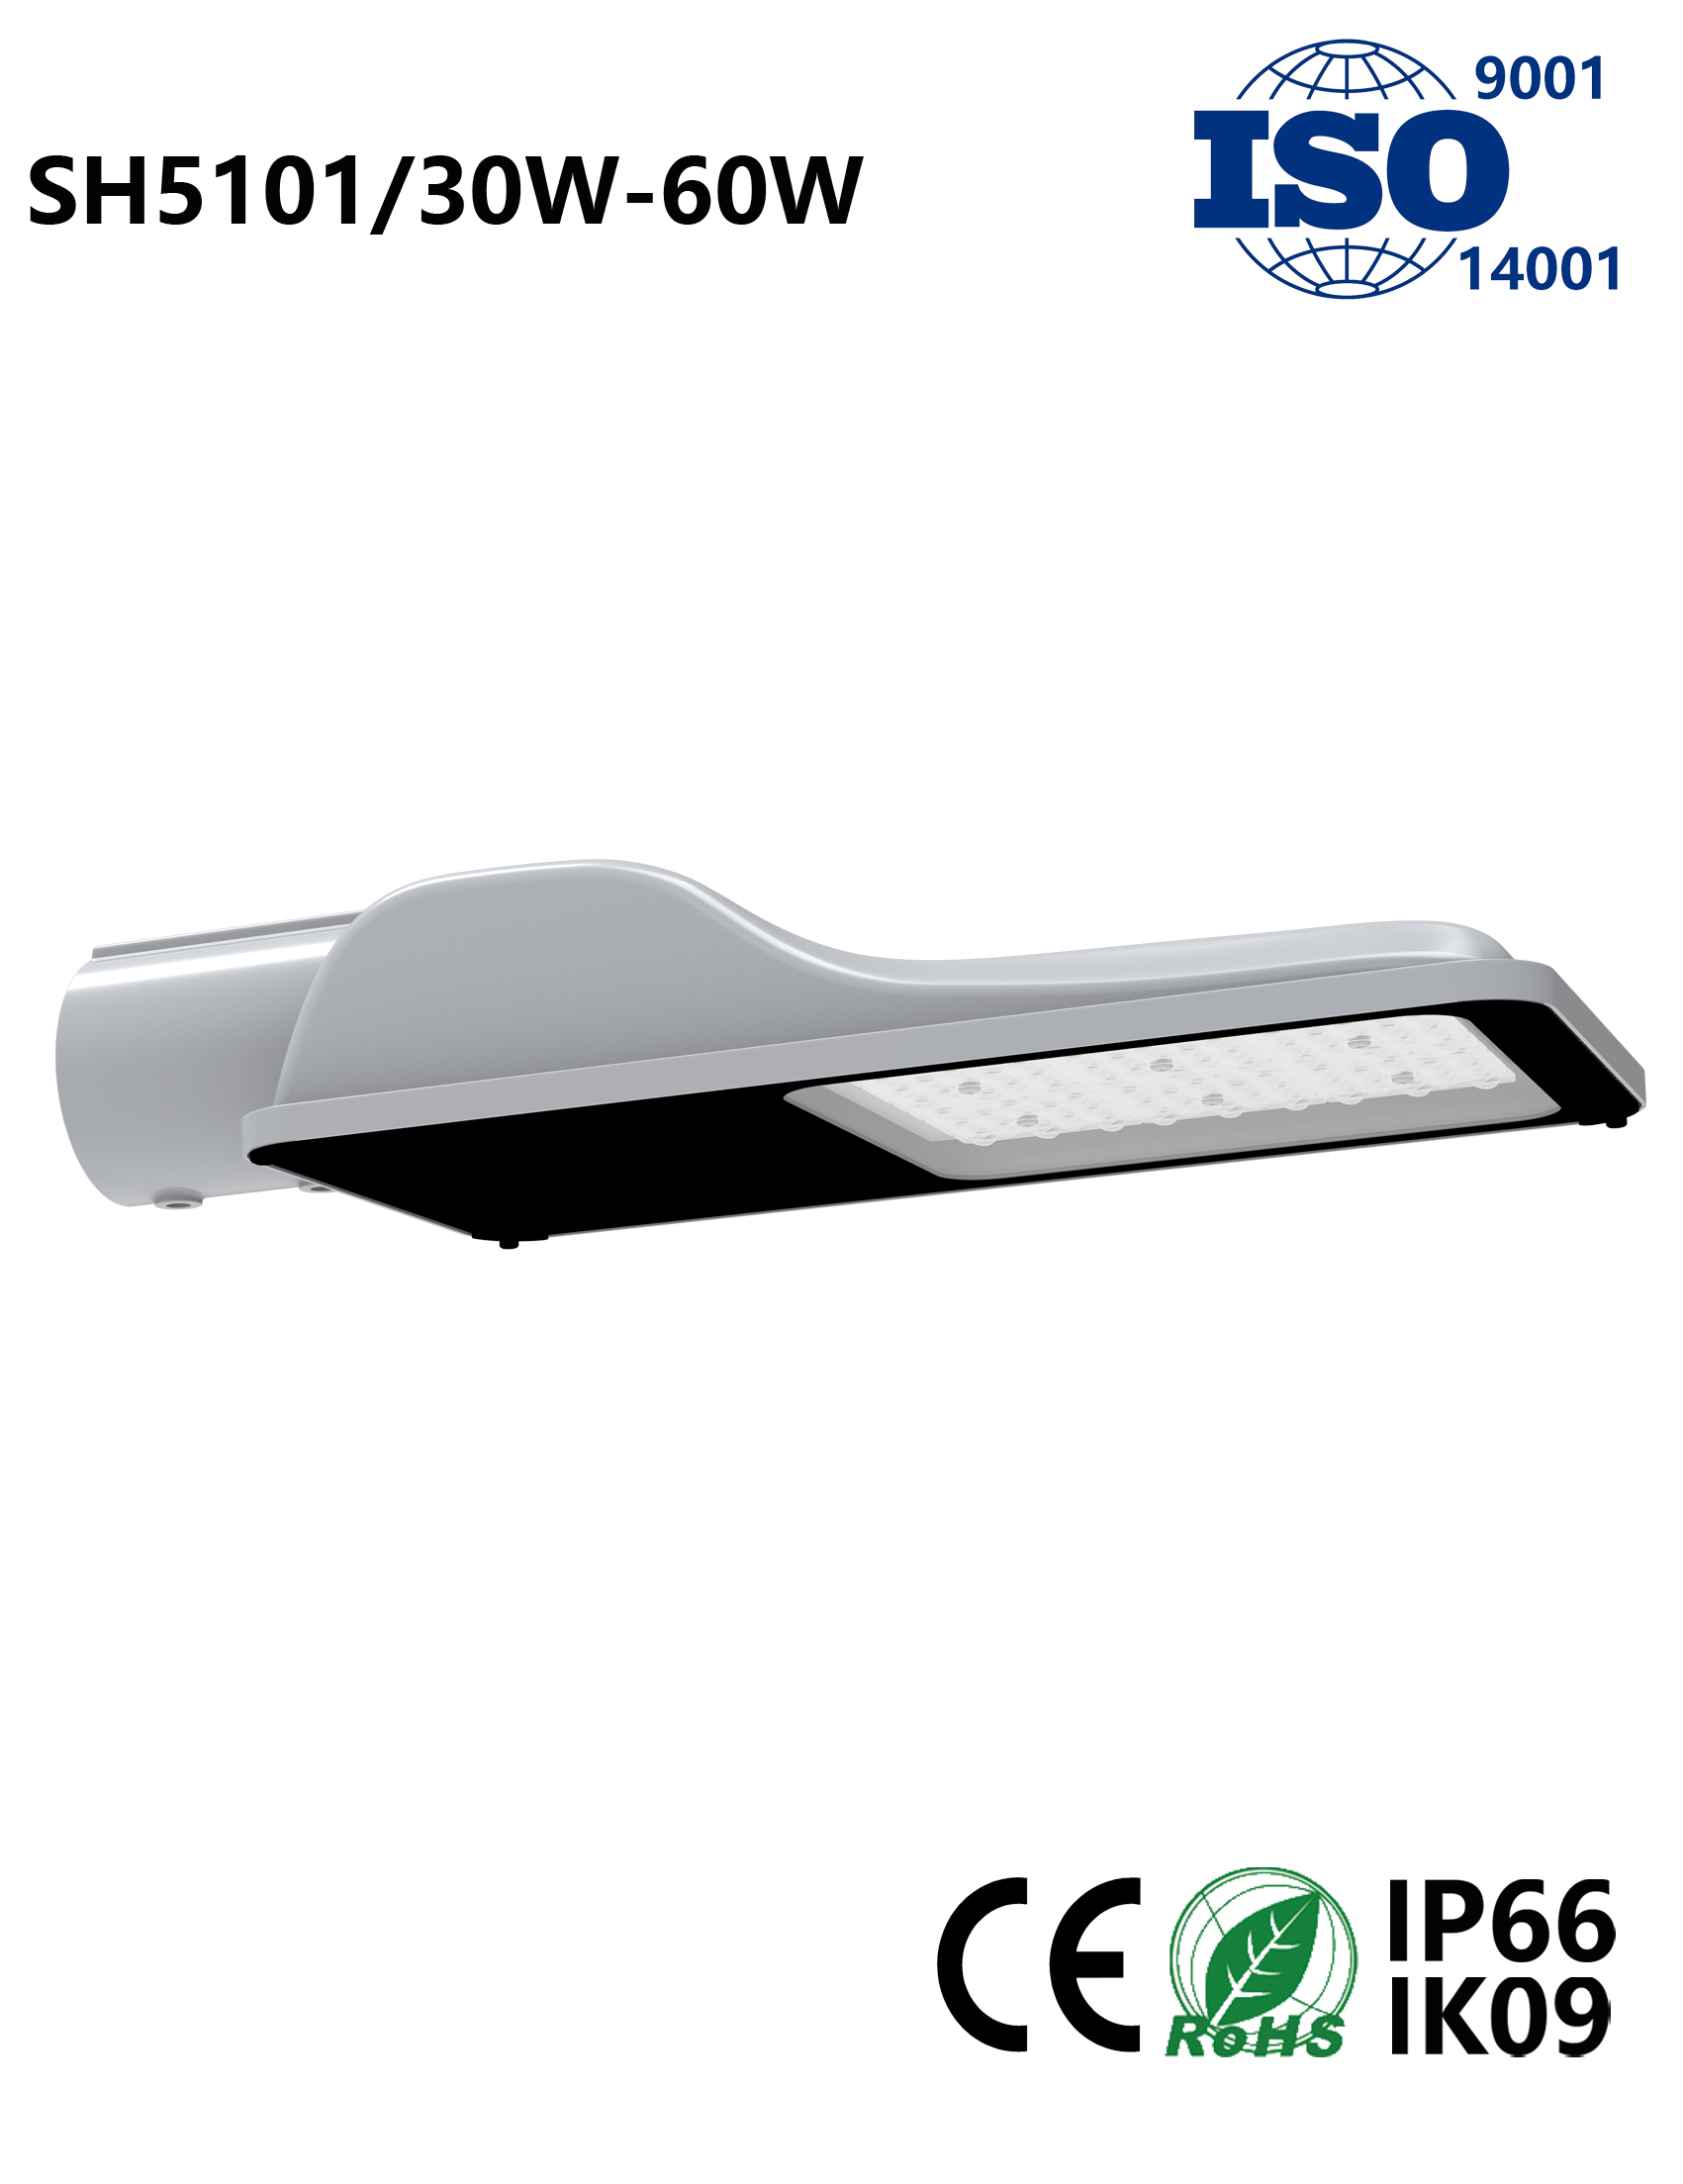 SH5101 30W-60W LED Street Light